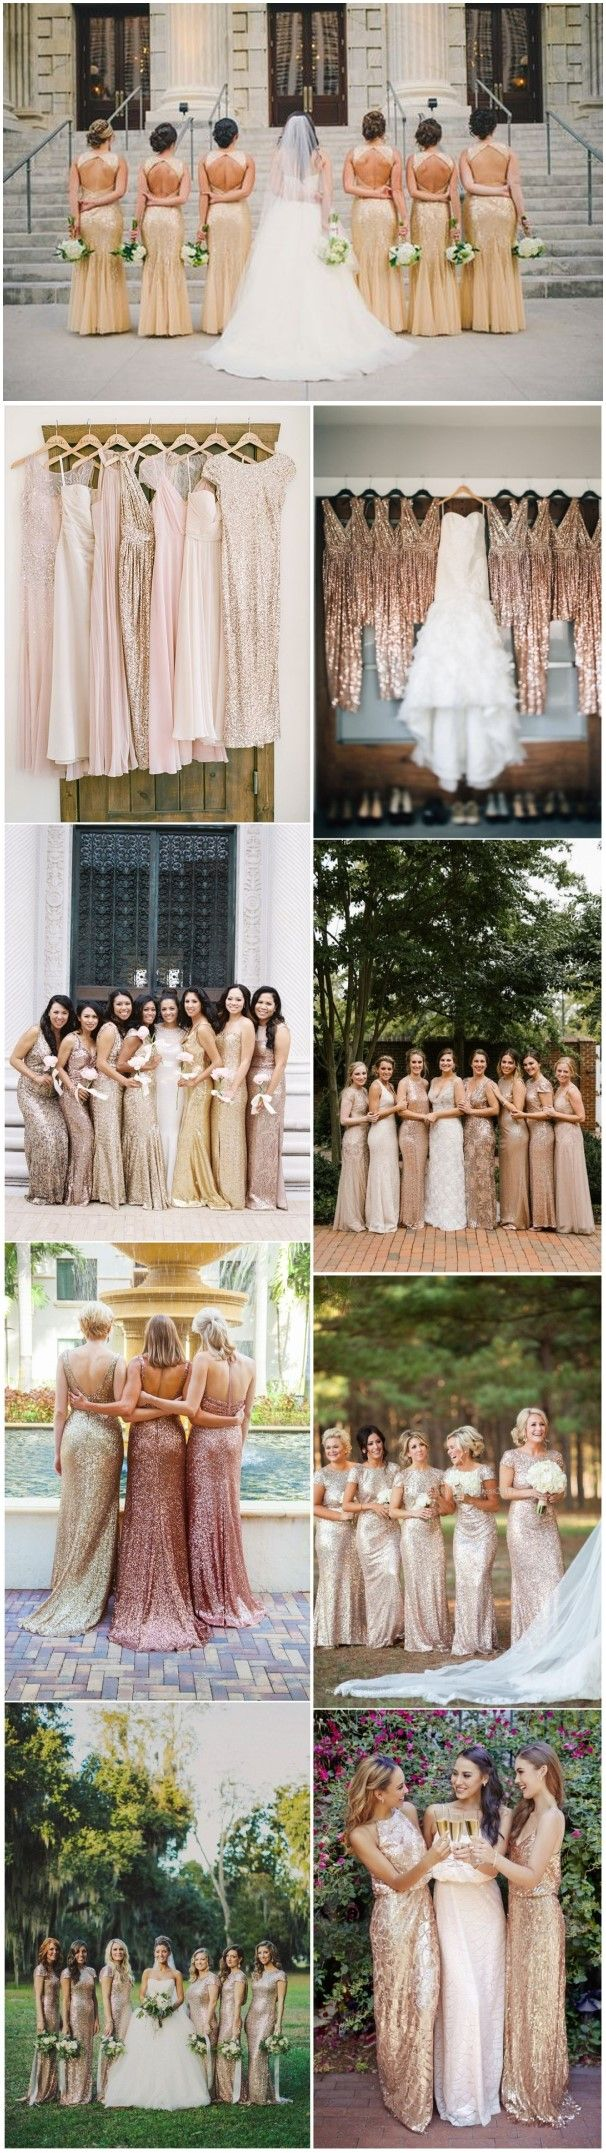 Bridesmaid Dresses » 22 Glamorous Golden Bridesmaid Dresses Ideas You Can't Miss! »   ❤️ See more:  http://www.weddinginclude.com/2017/04/glamorous-gold-bridesmaid-dresses-ideas-you-cant-miss/